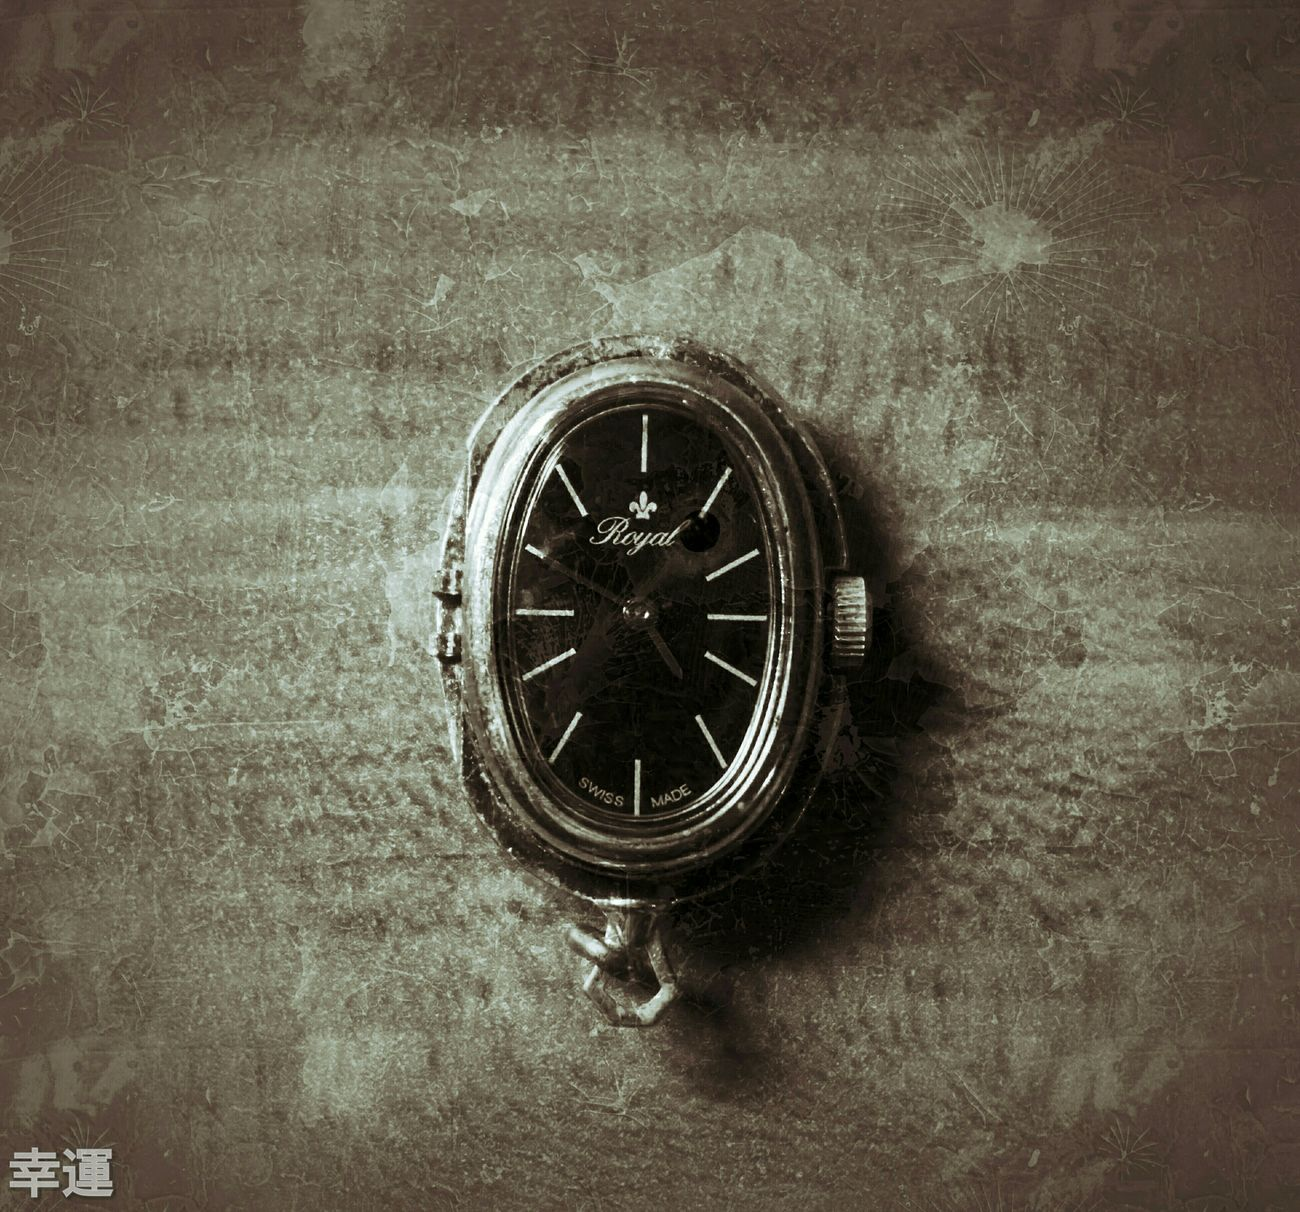 how much time you have got left...? Taking Photos Time Monochrome Old Still Life EyeEm Best Edits Watch Antique Endoftime Sleepless